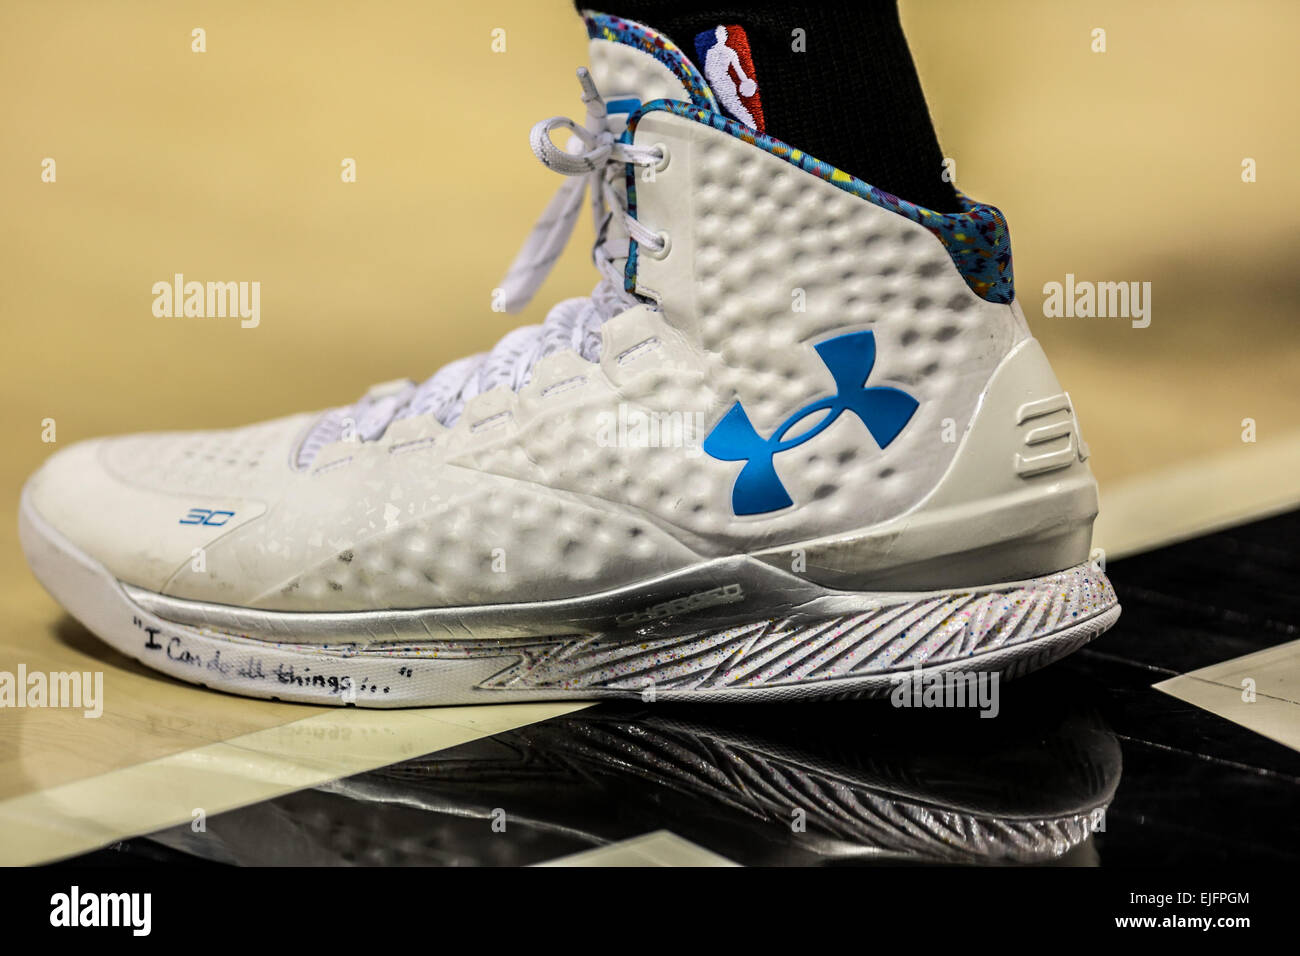 Steph Curry reveals why he didn't wear Under Armour 'Chef' shoes in